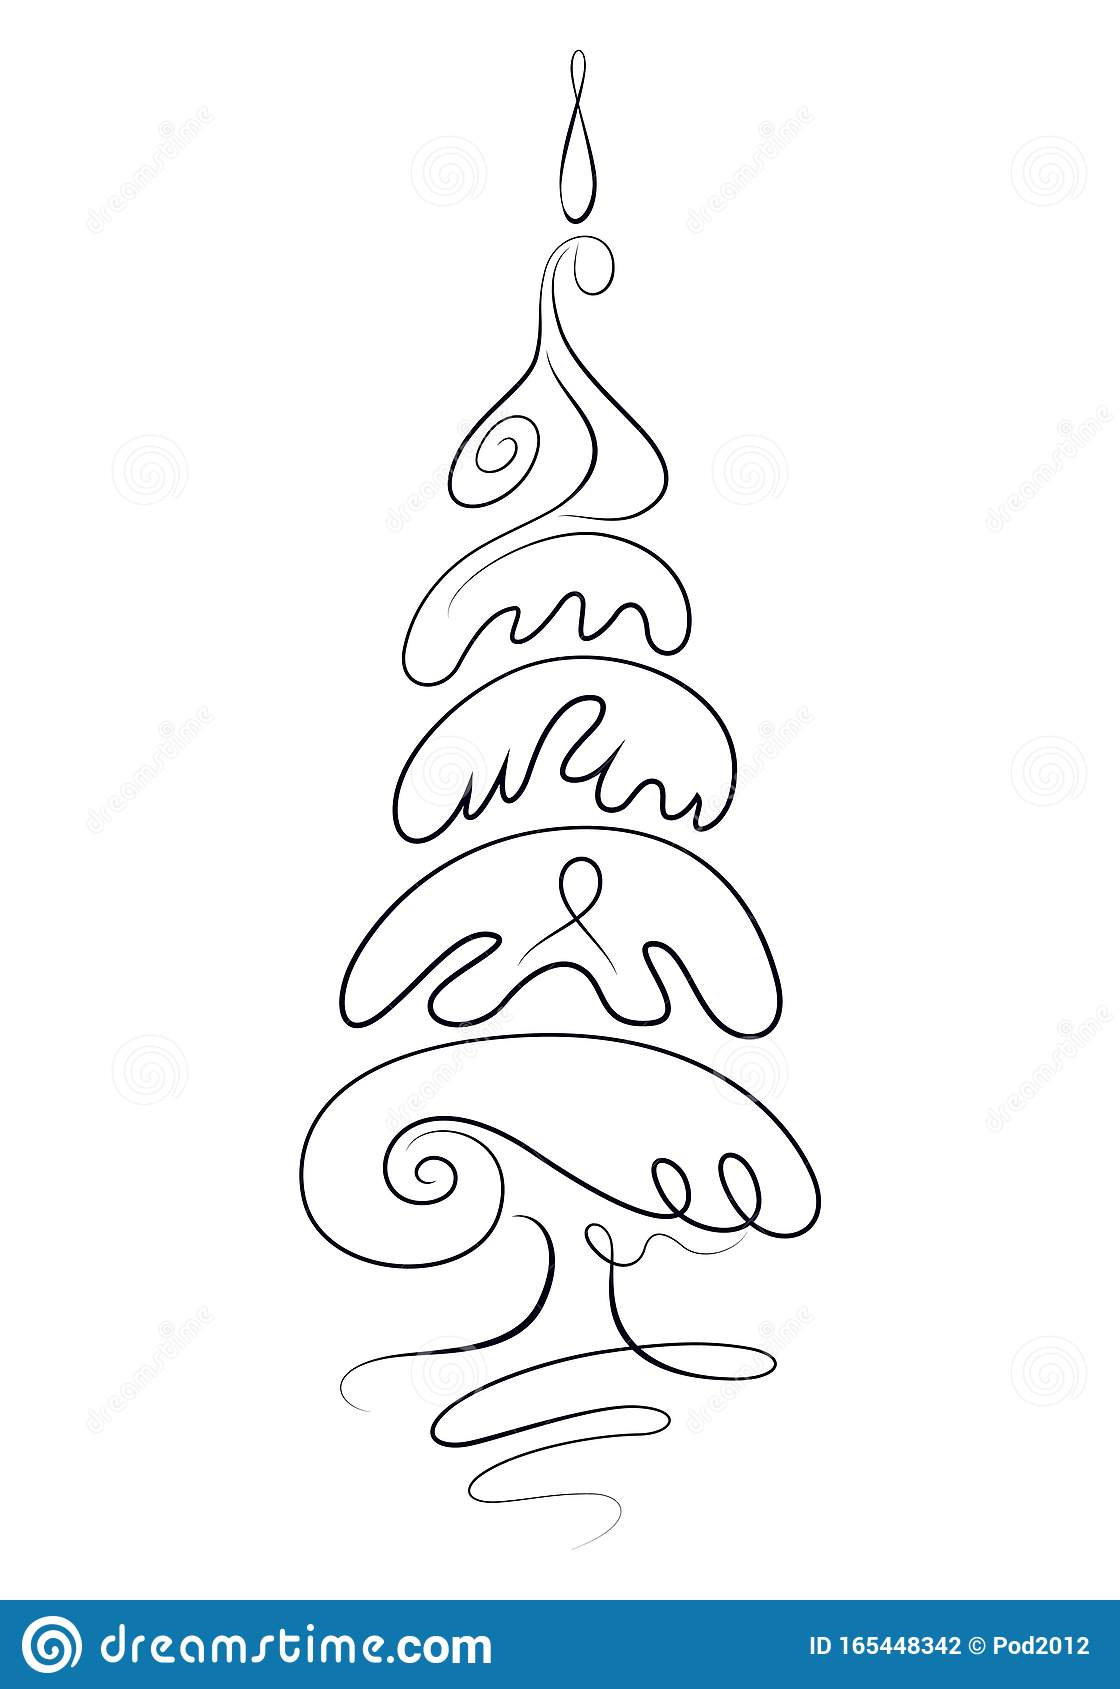 Hand Drawn Christmas Tree Sketch Isolated Vector Illustration Stock Vector Illustration Of Icon Card 165448342